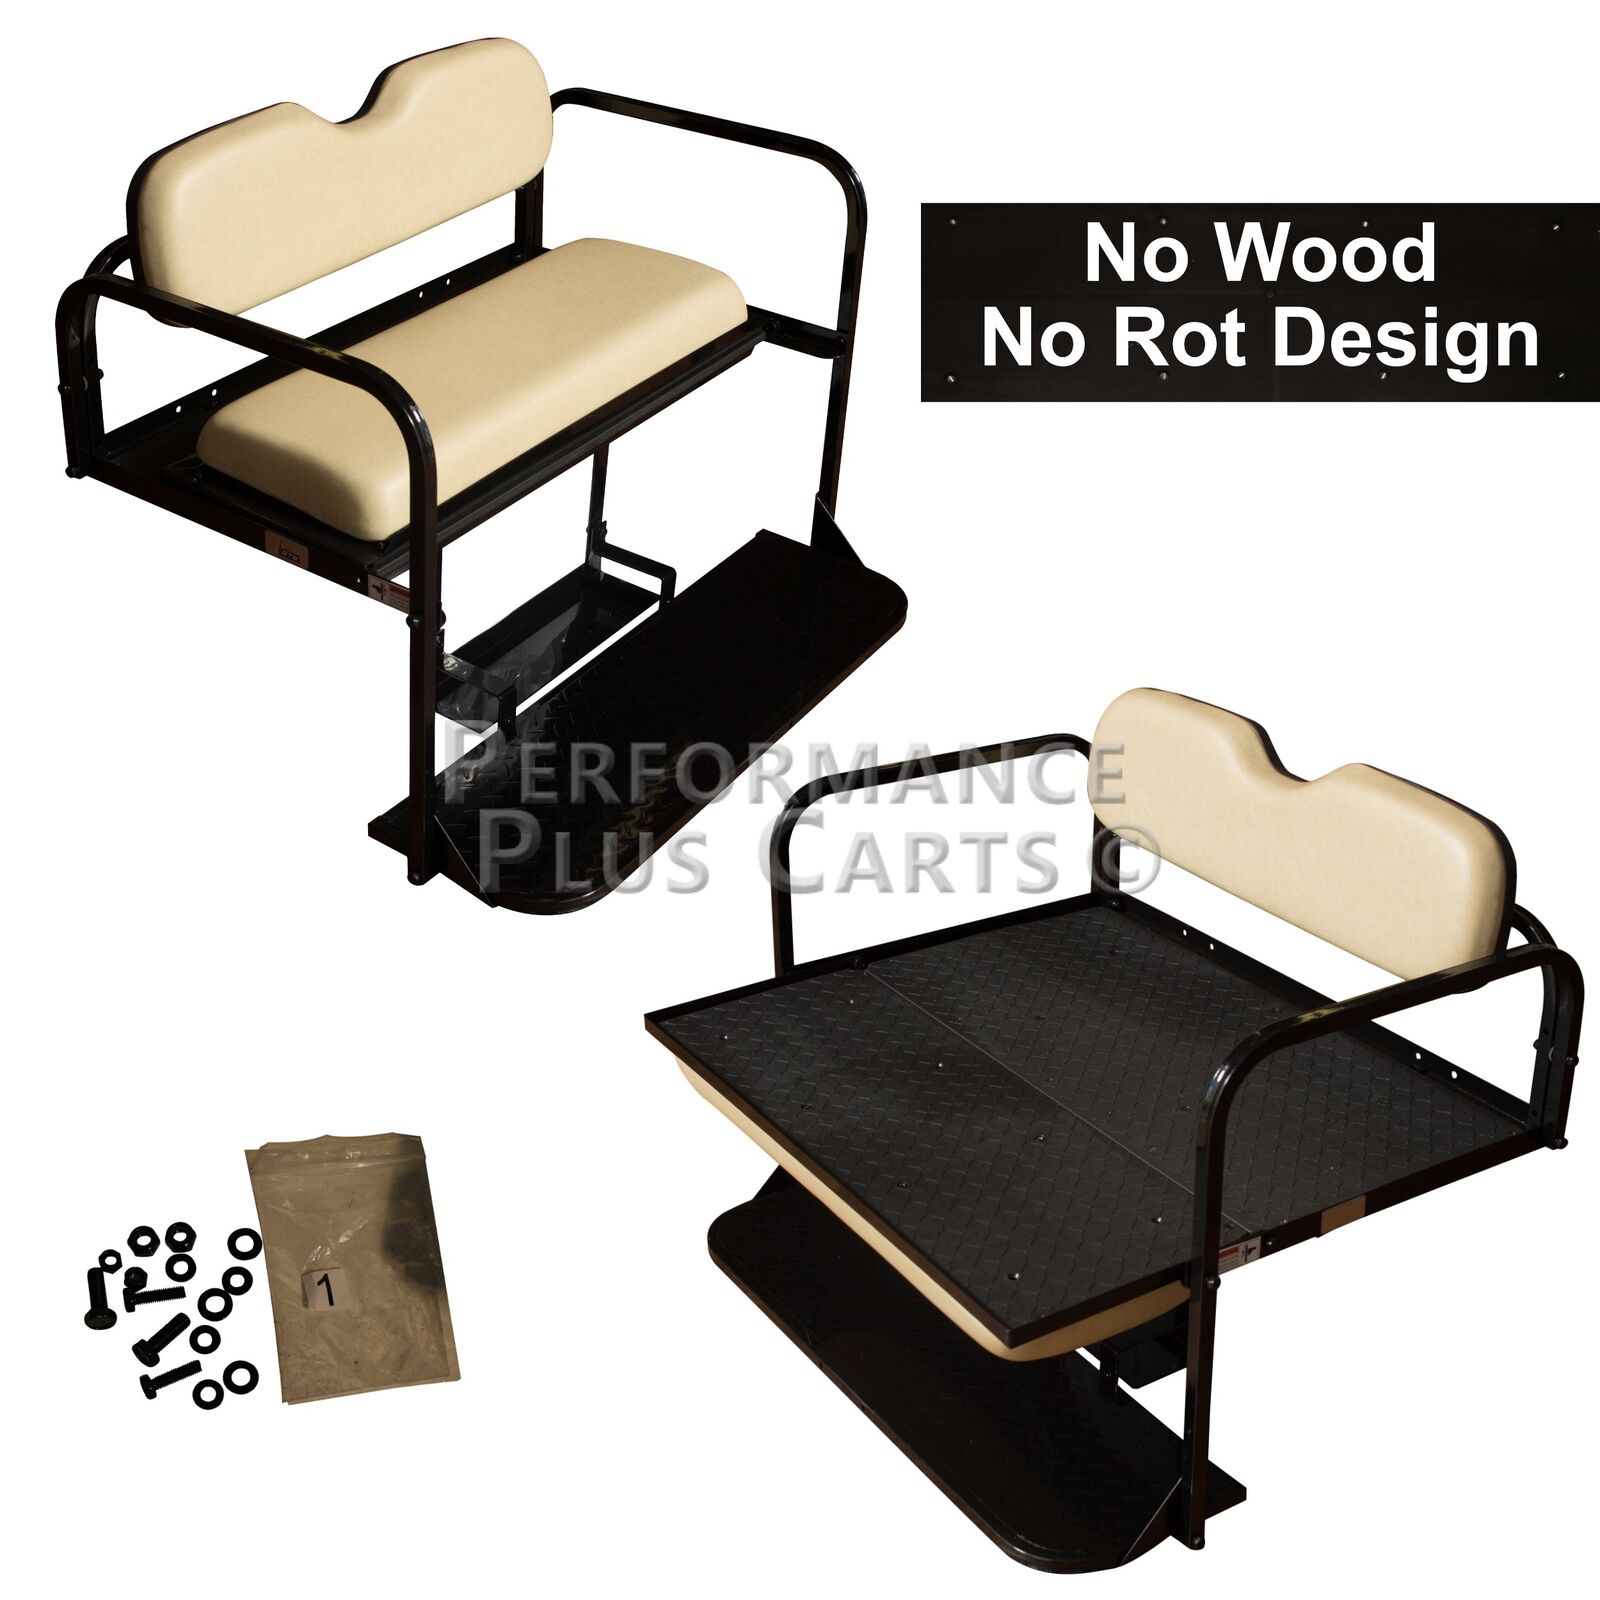 Club Car DS Golf Cart Flip Folding Rear Back Seat Kit - Buff ... Golf Cart Back Cushion on golf cart body, golf cart skirt, golf cart axle shaft, golf cart width, golf cart cushion covers, golf bag back cushion, golf cart seat, golf cart frame,